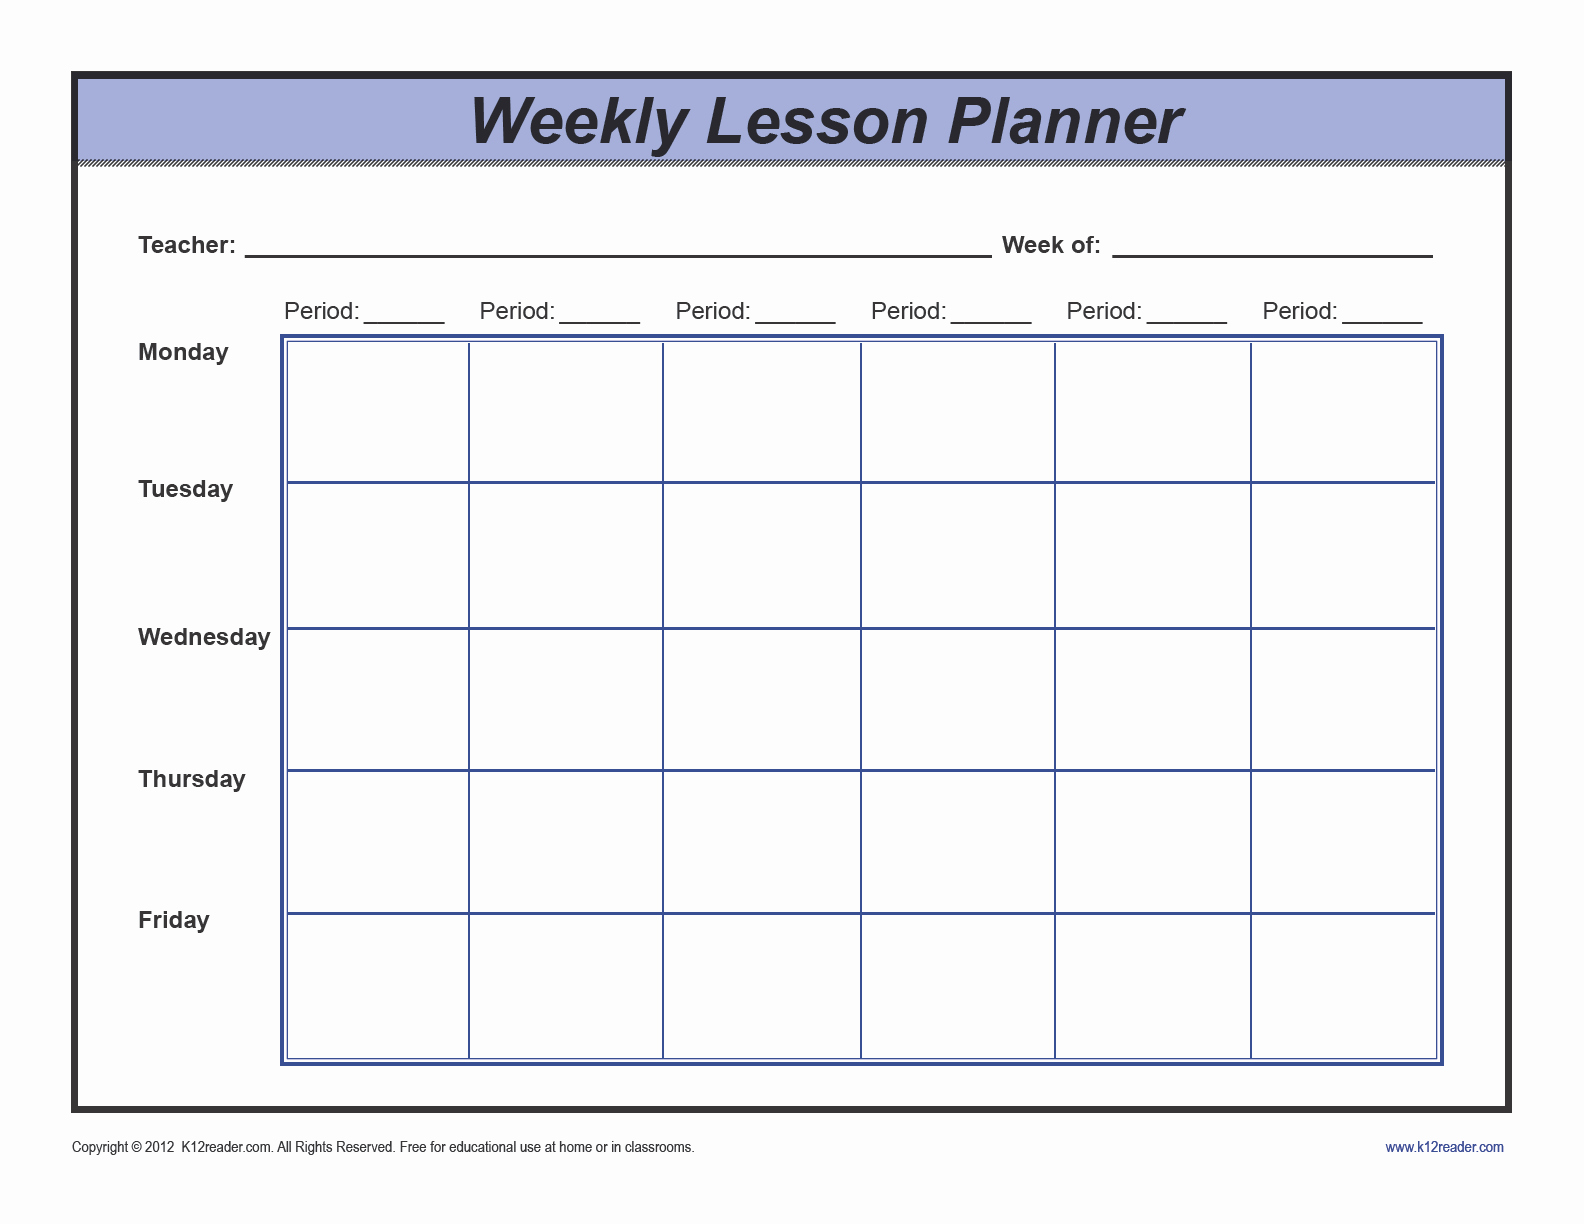 Weekly Lesson Plan Template Word Luxury Download Weekly Lesson Plan Template Preschool